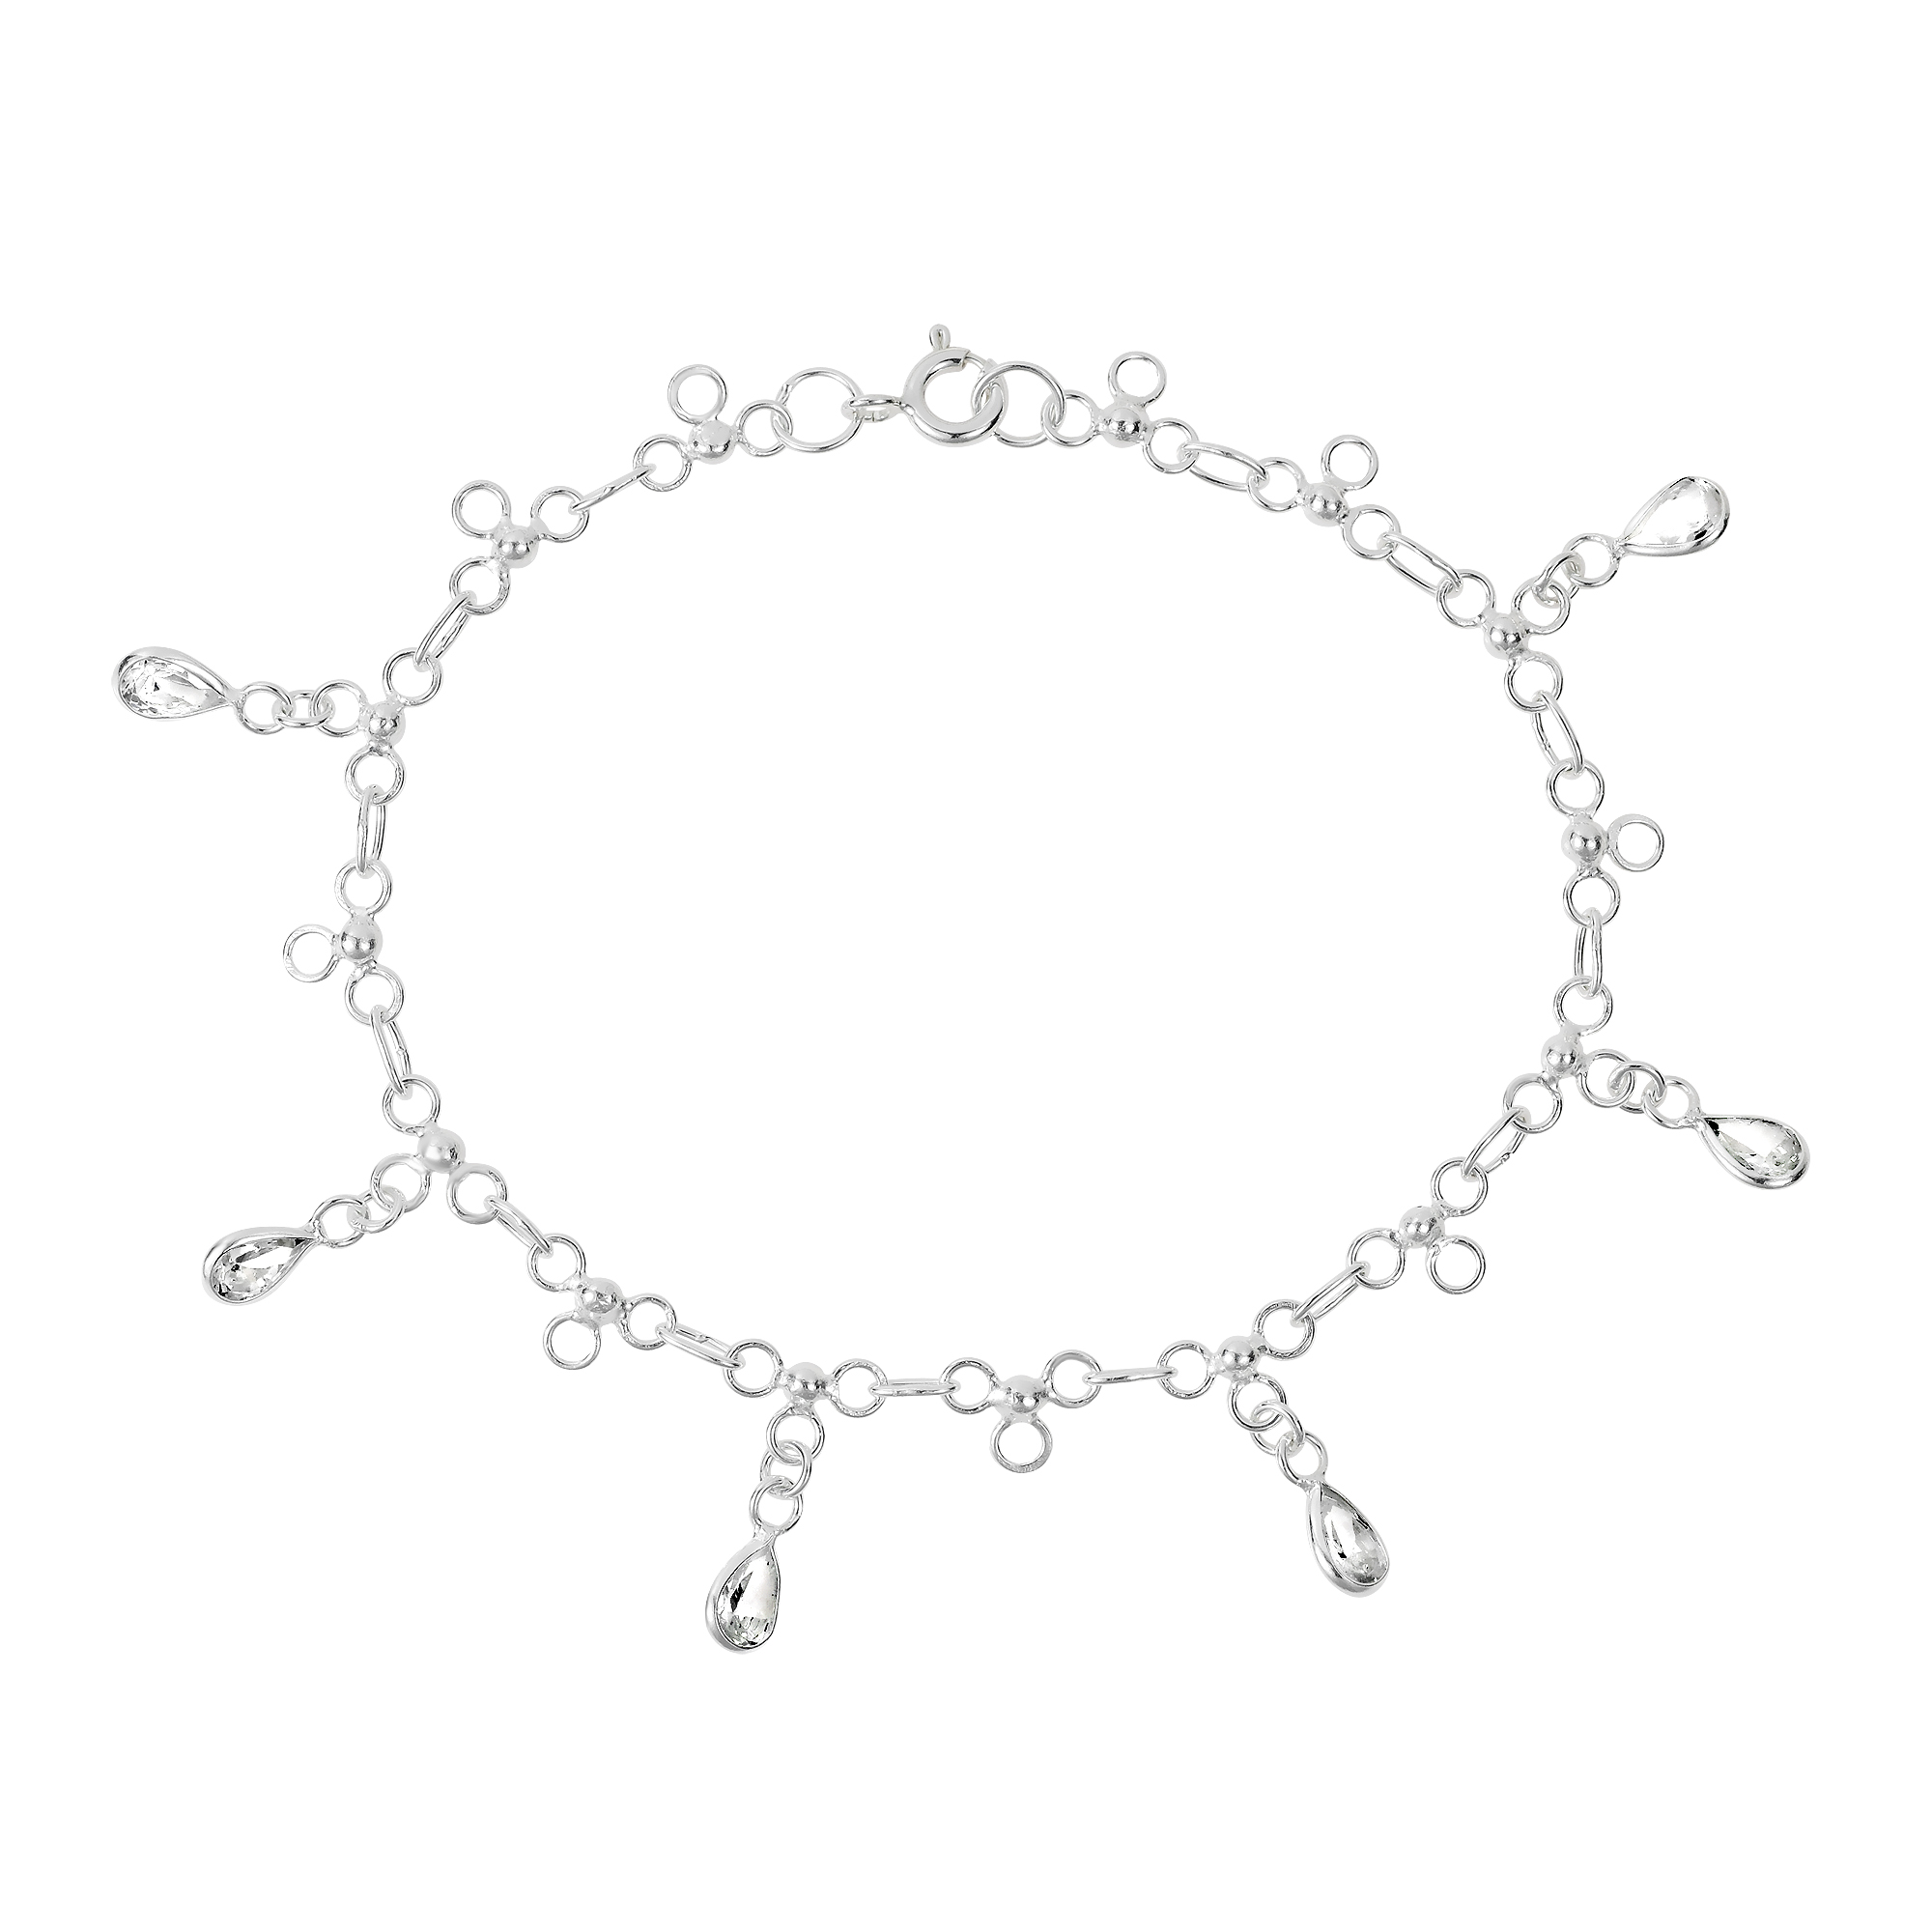 clr heart products product clear anklet romantic ca silver link anklets chain details sterling cubic zirconia